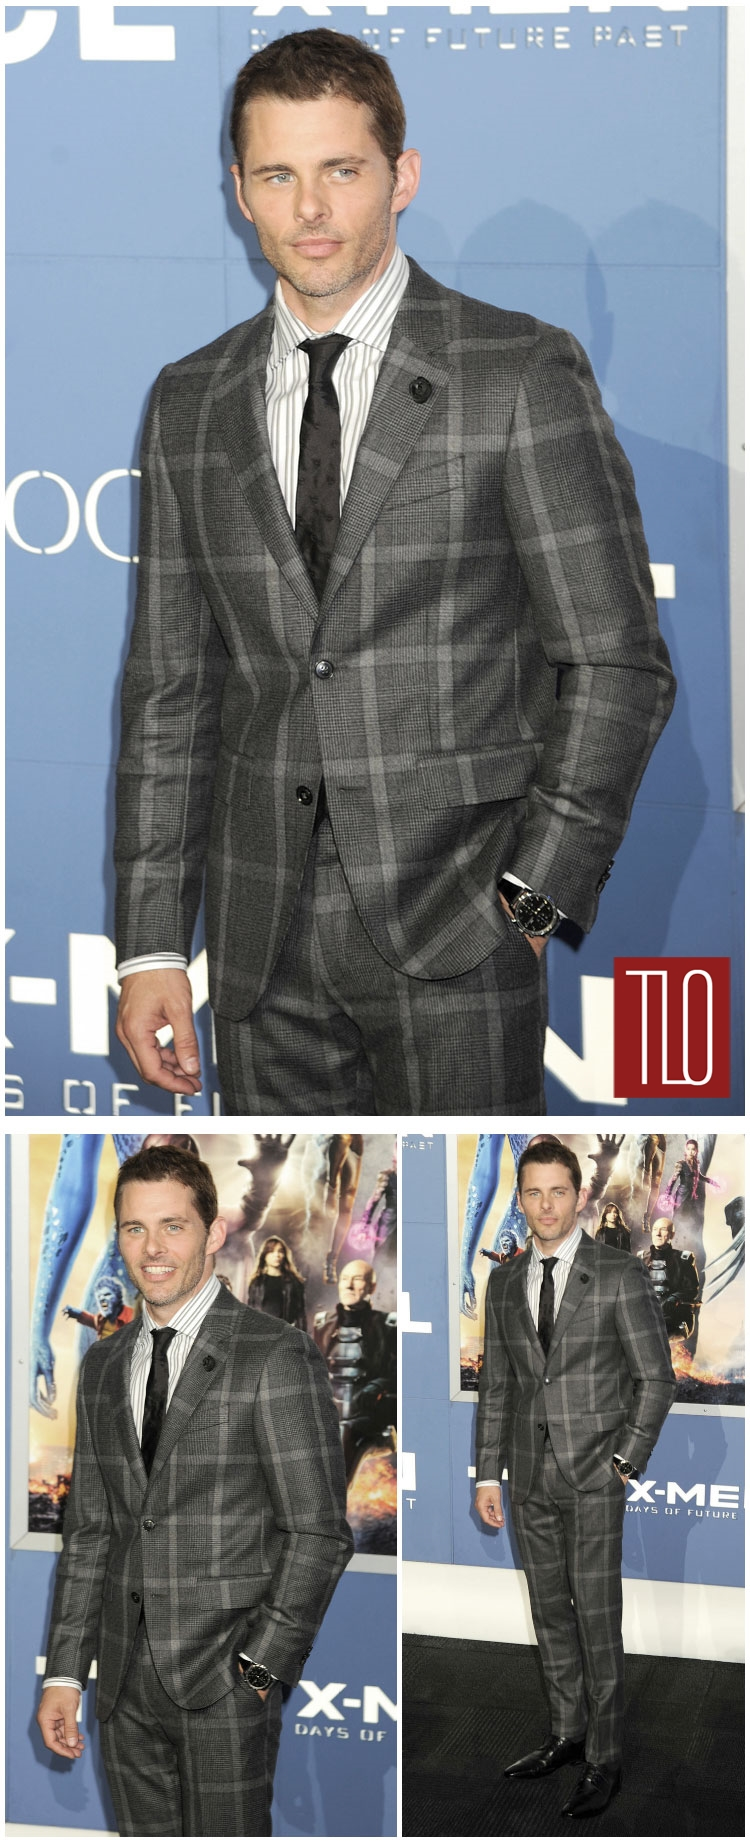 James-Marsden-X-Men-Days-Future-Past-New-York-Premiere-Kent-Curwen-Simon-Spurr-Tom-Lorenzo-Site-TLO (1)